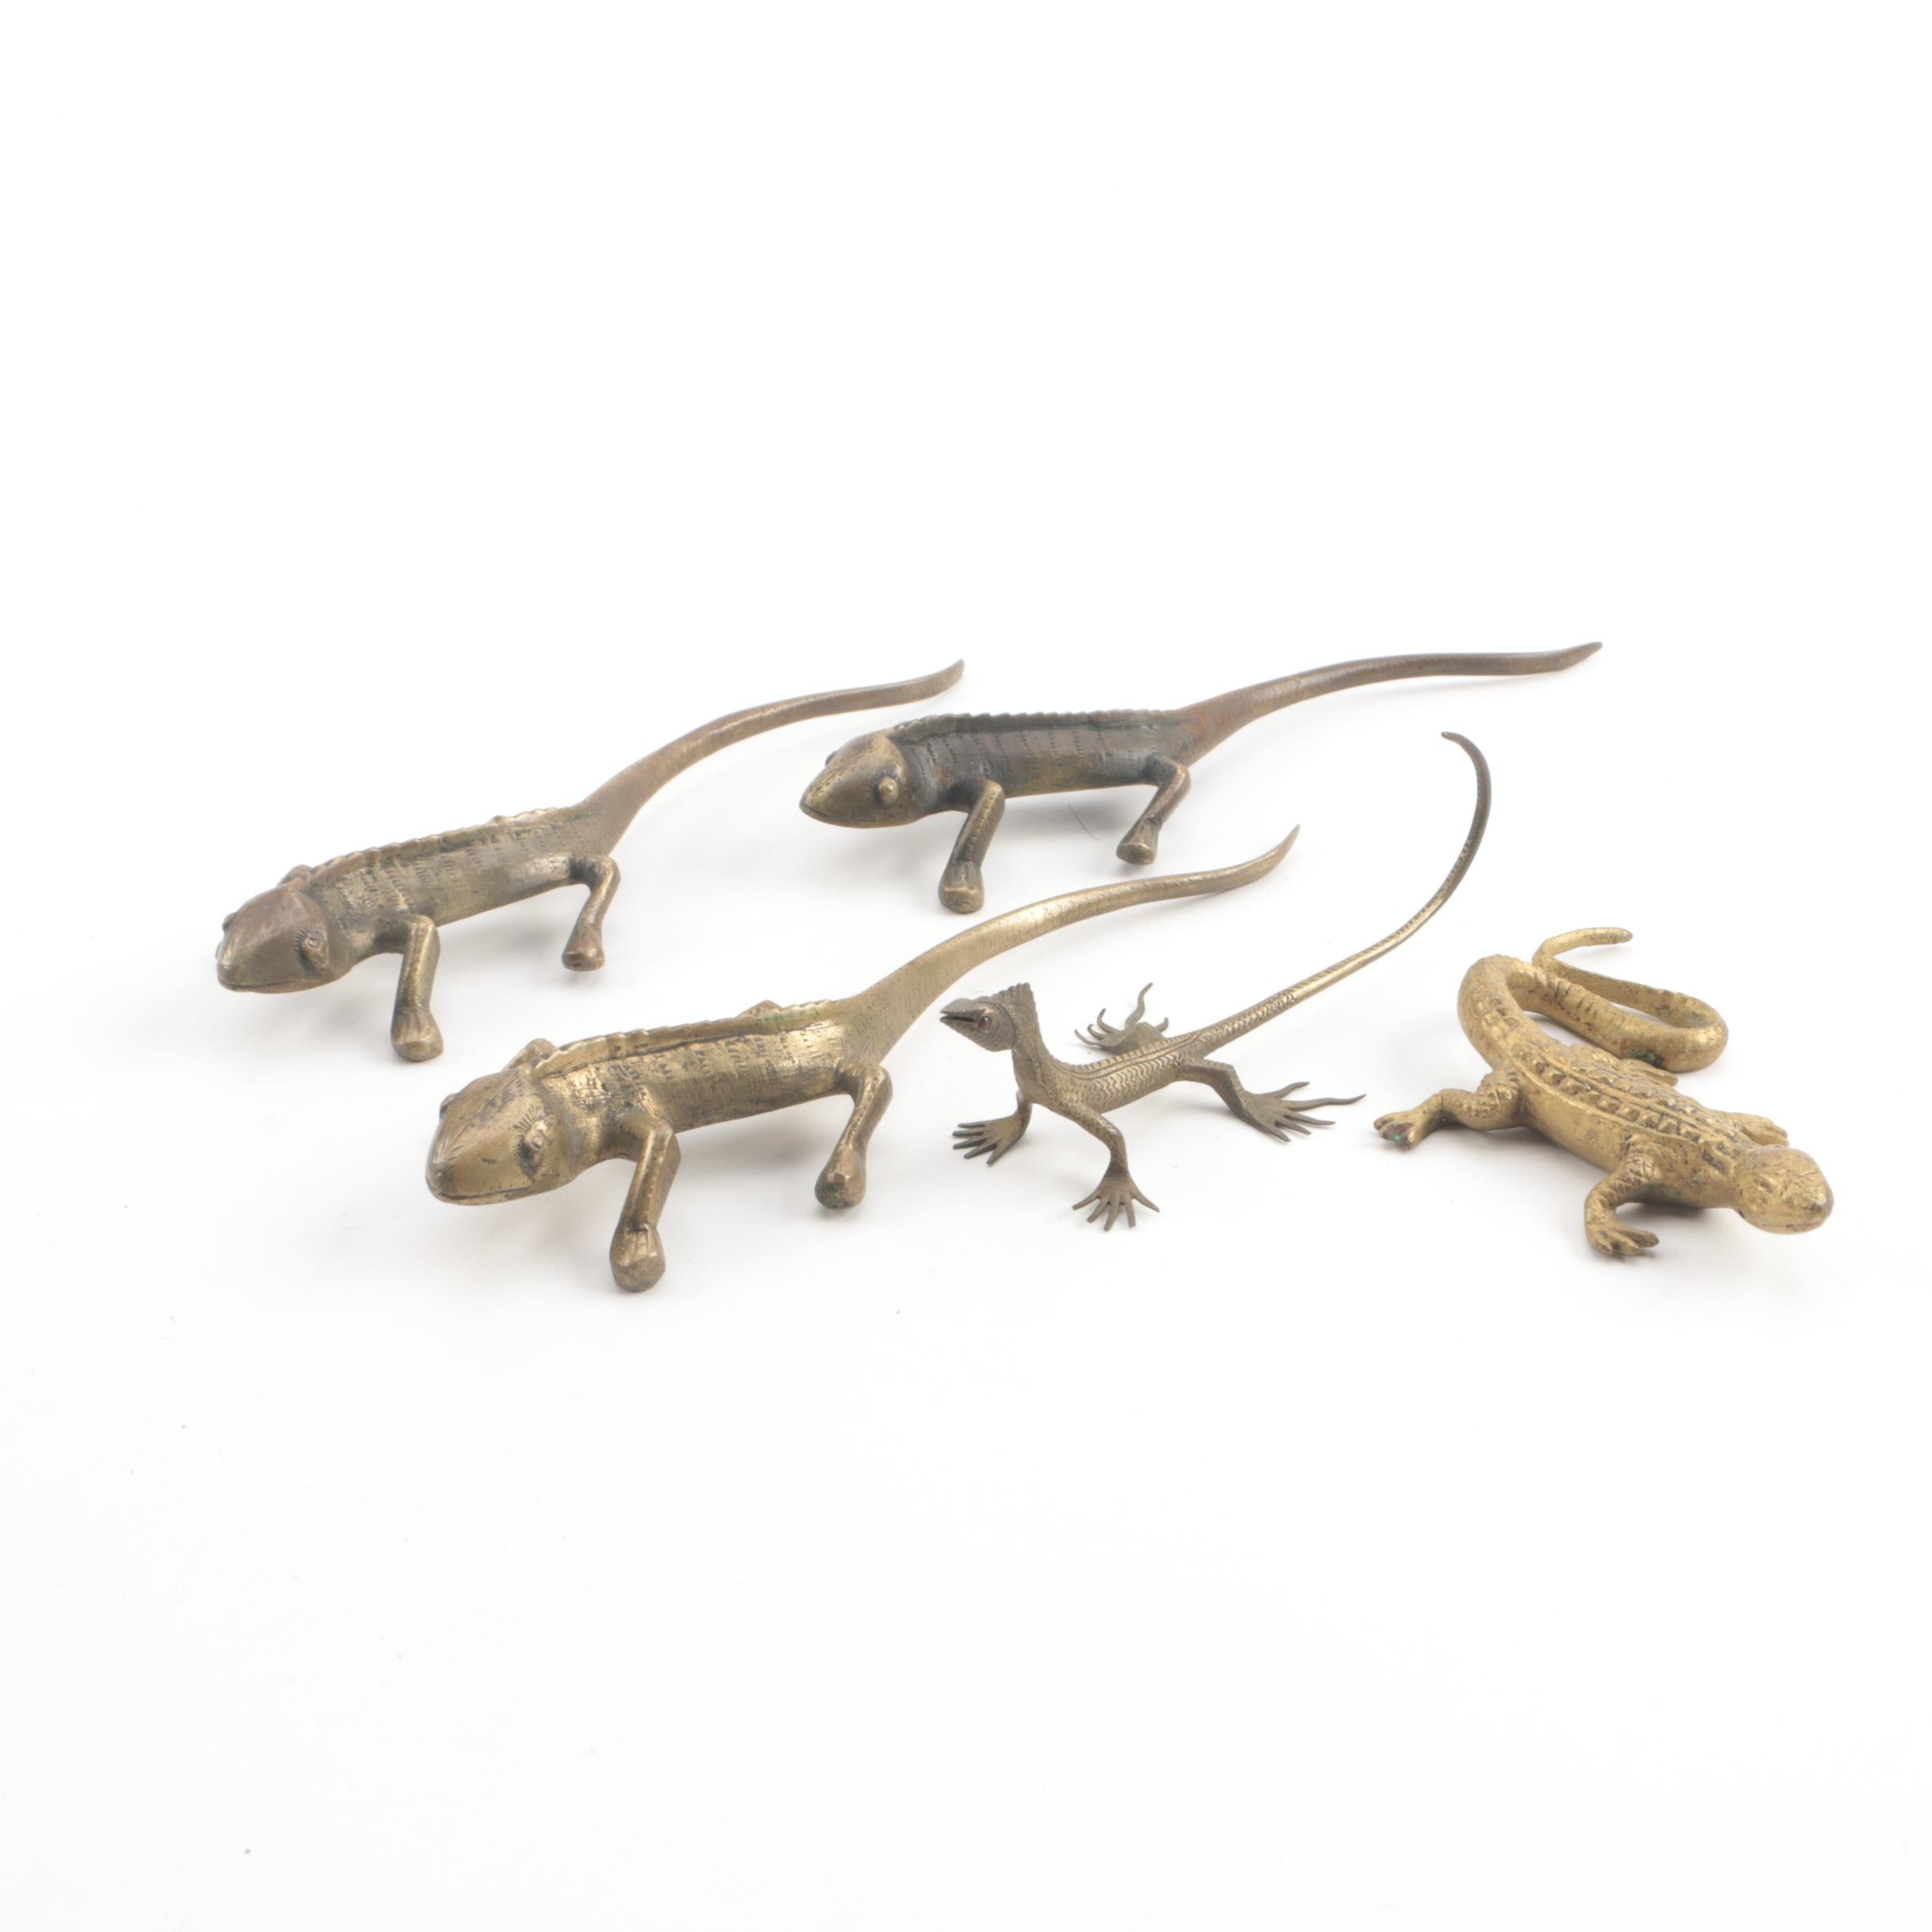 Vintage Brass Lizard Figurines from India and Korea